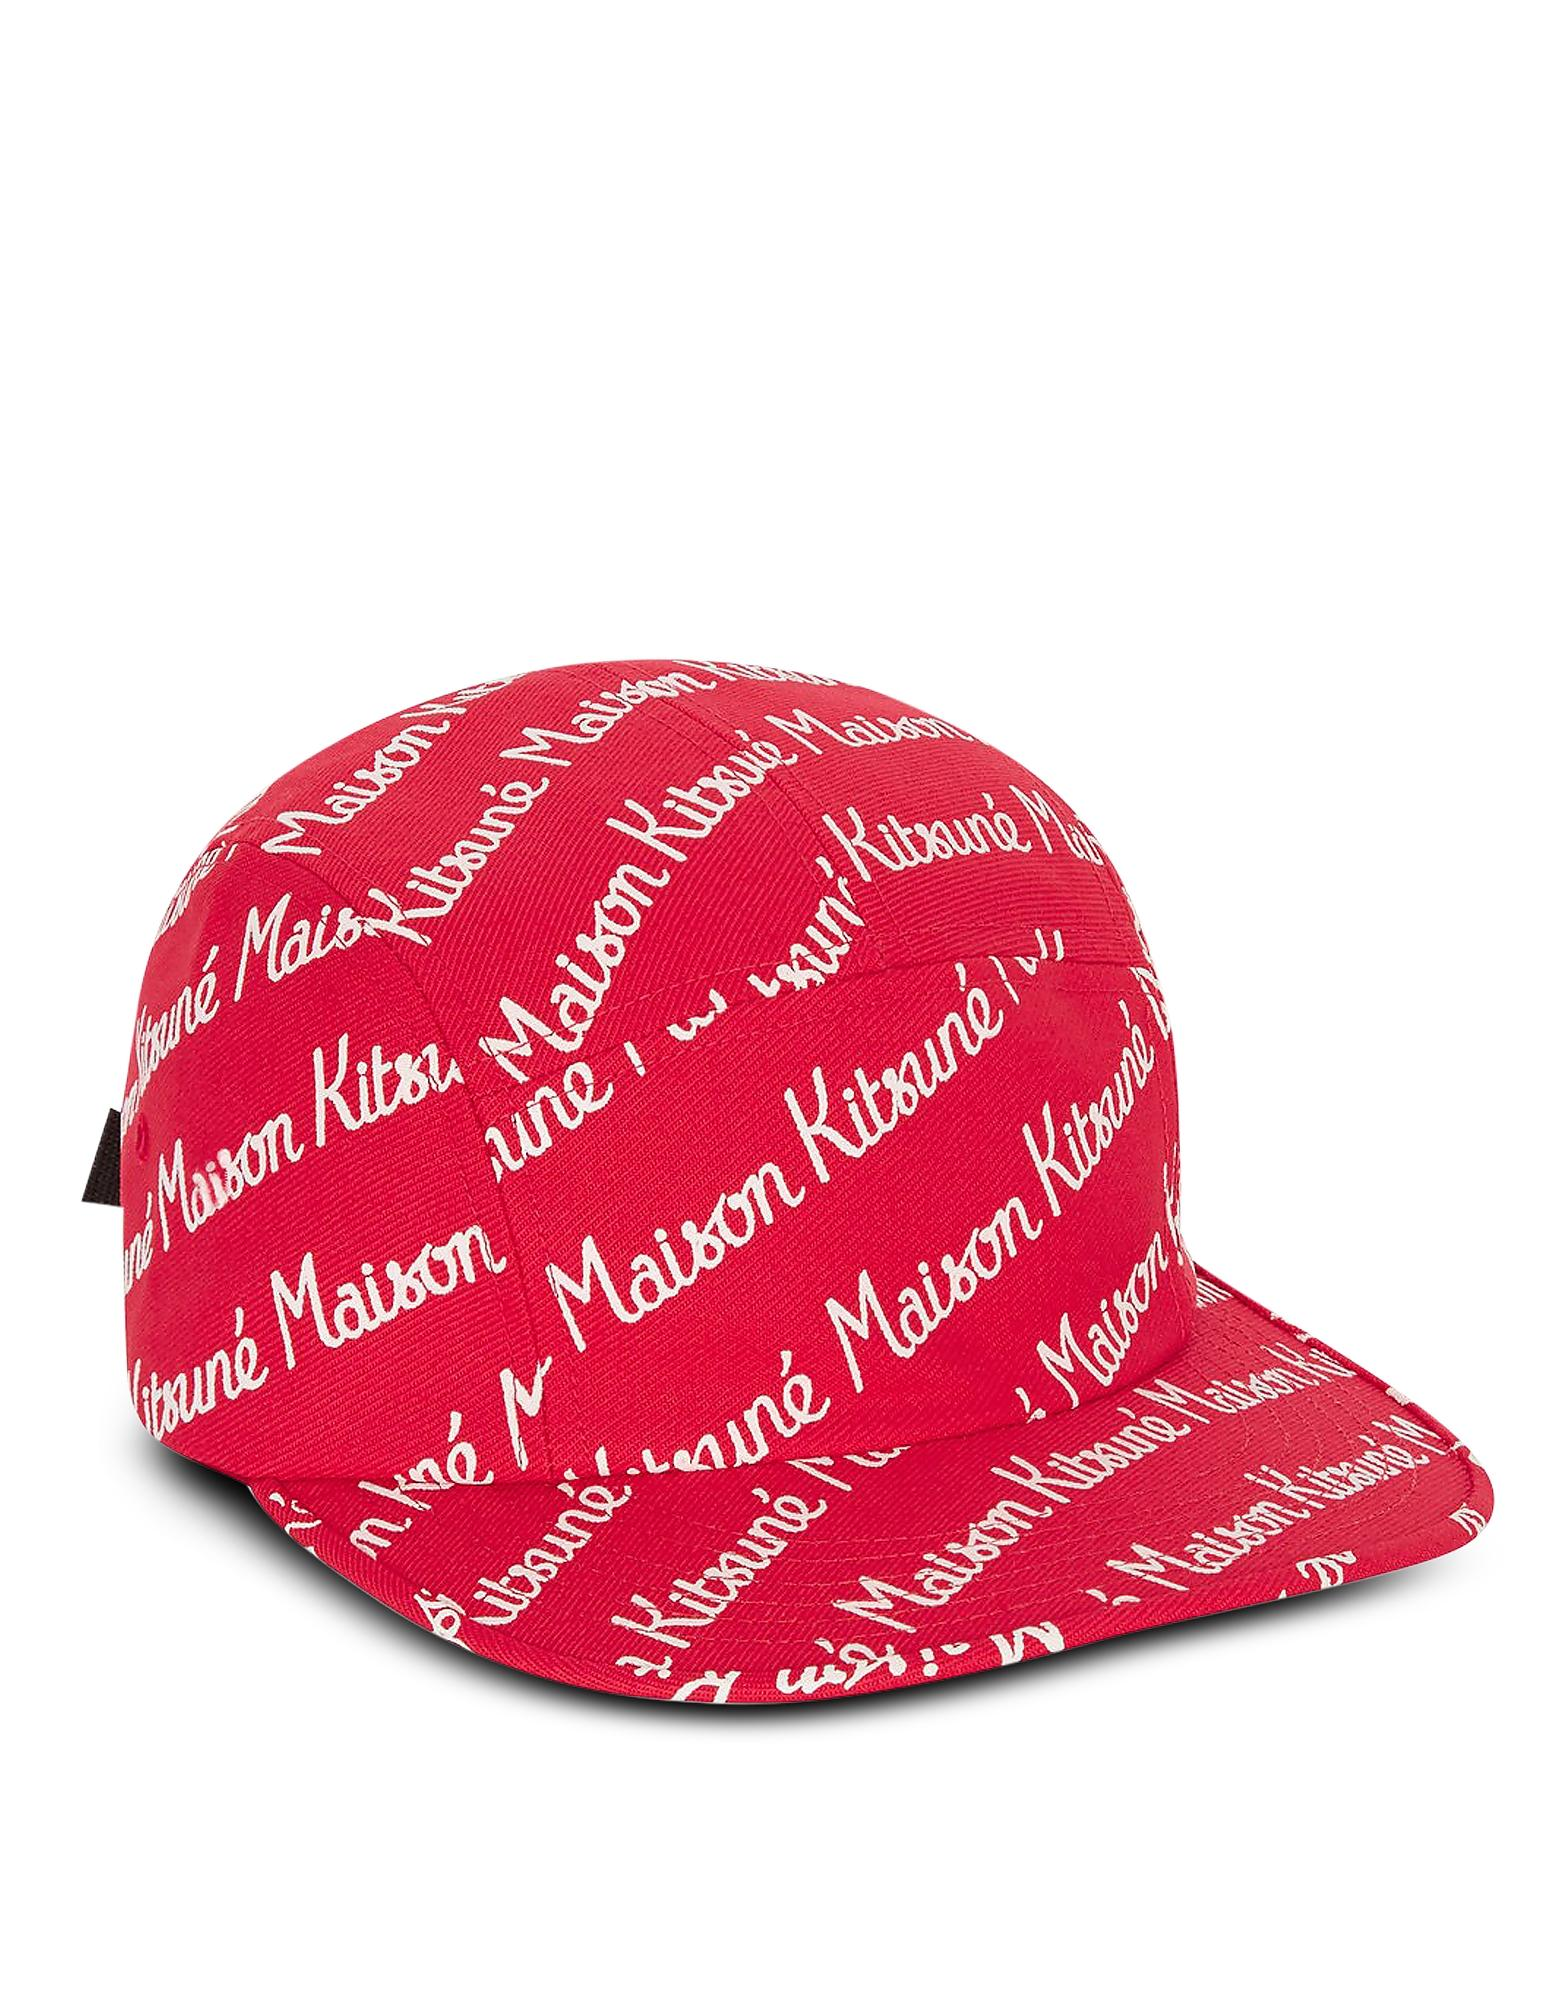 ef73a5ff36f993 ... Maison Kitsune 5p Red Cotton Canvas Baseball Cap for Men - Lyst. View  fullscreen